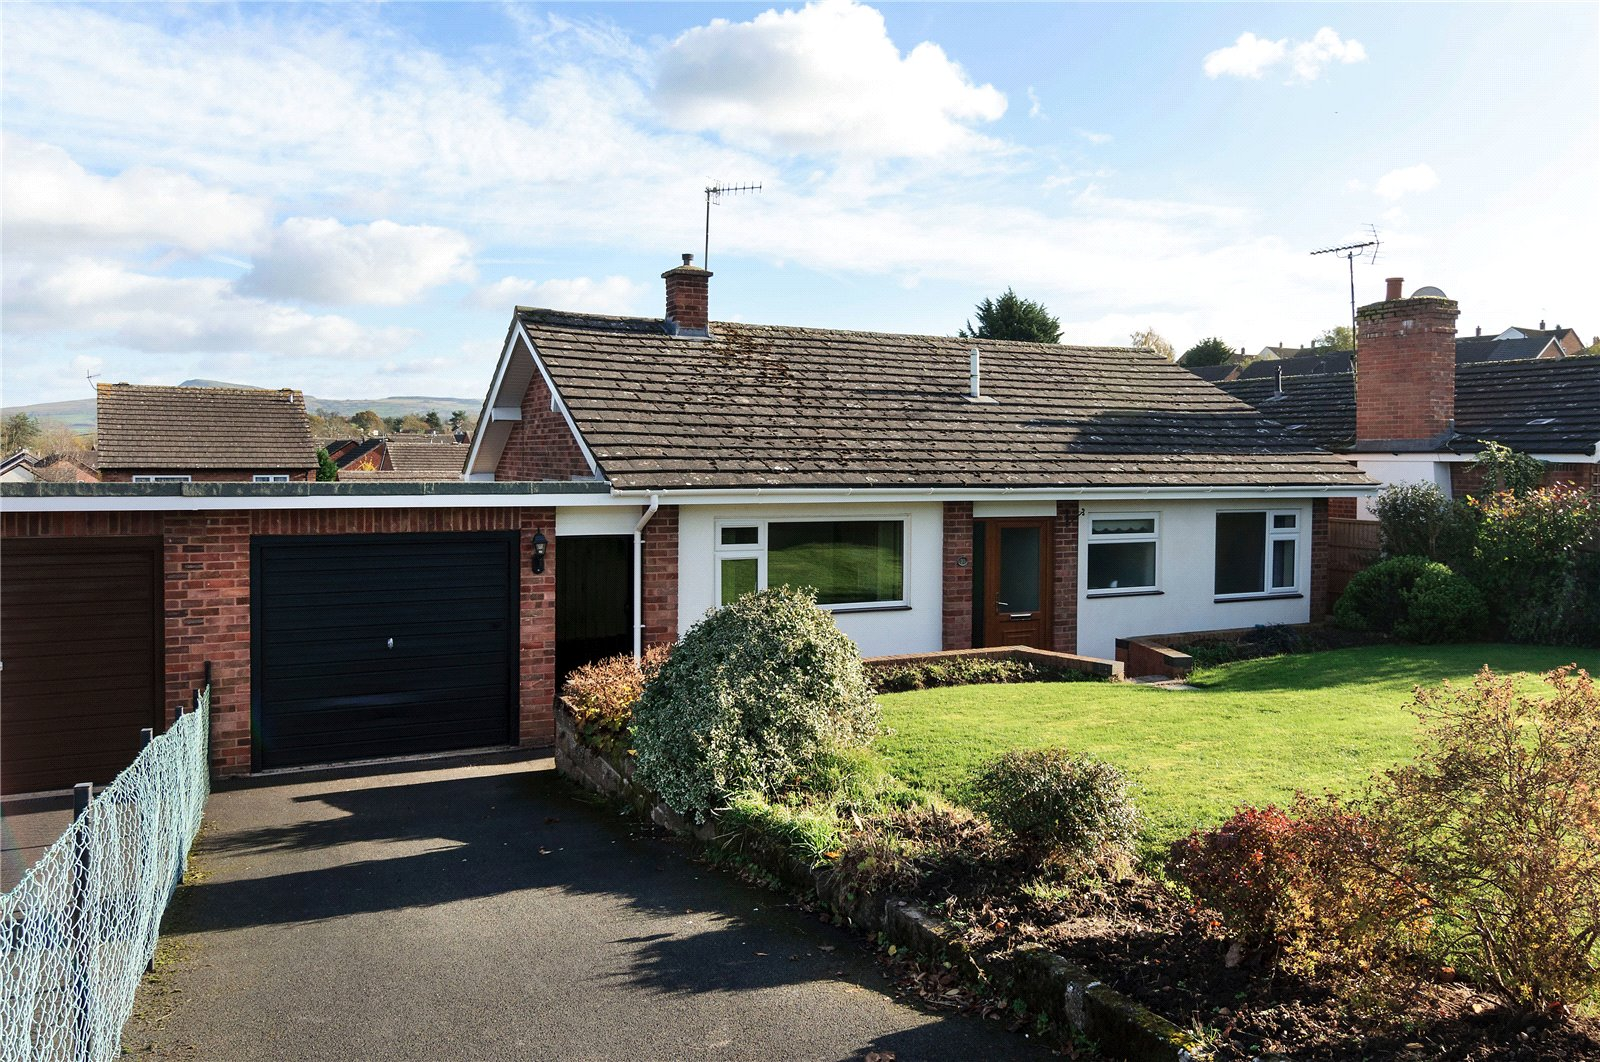 2 Bedrooms Bungalow for sale in 31 Bringewood Road, Ludlow, Shropshire, SY8